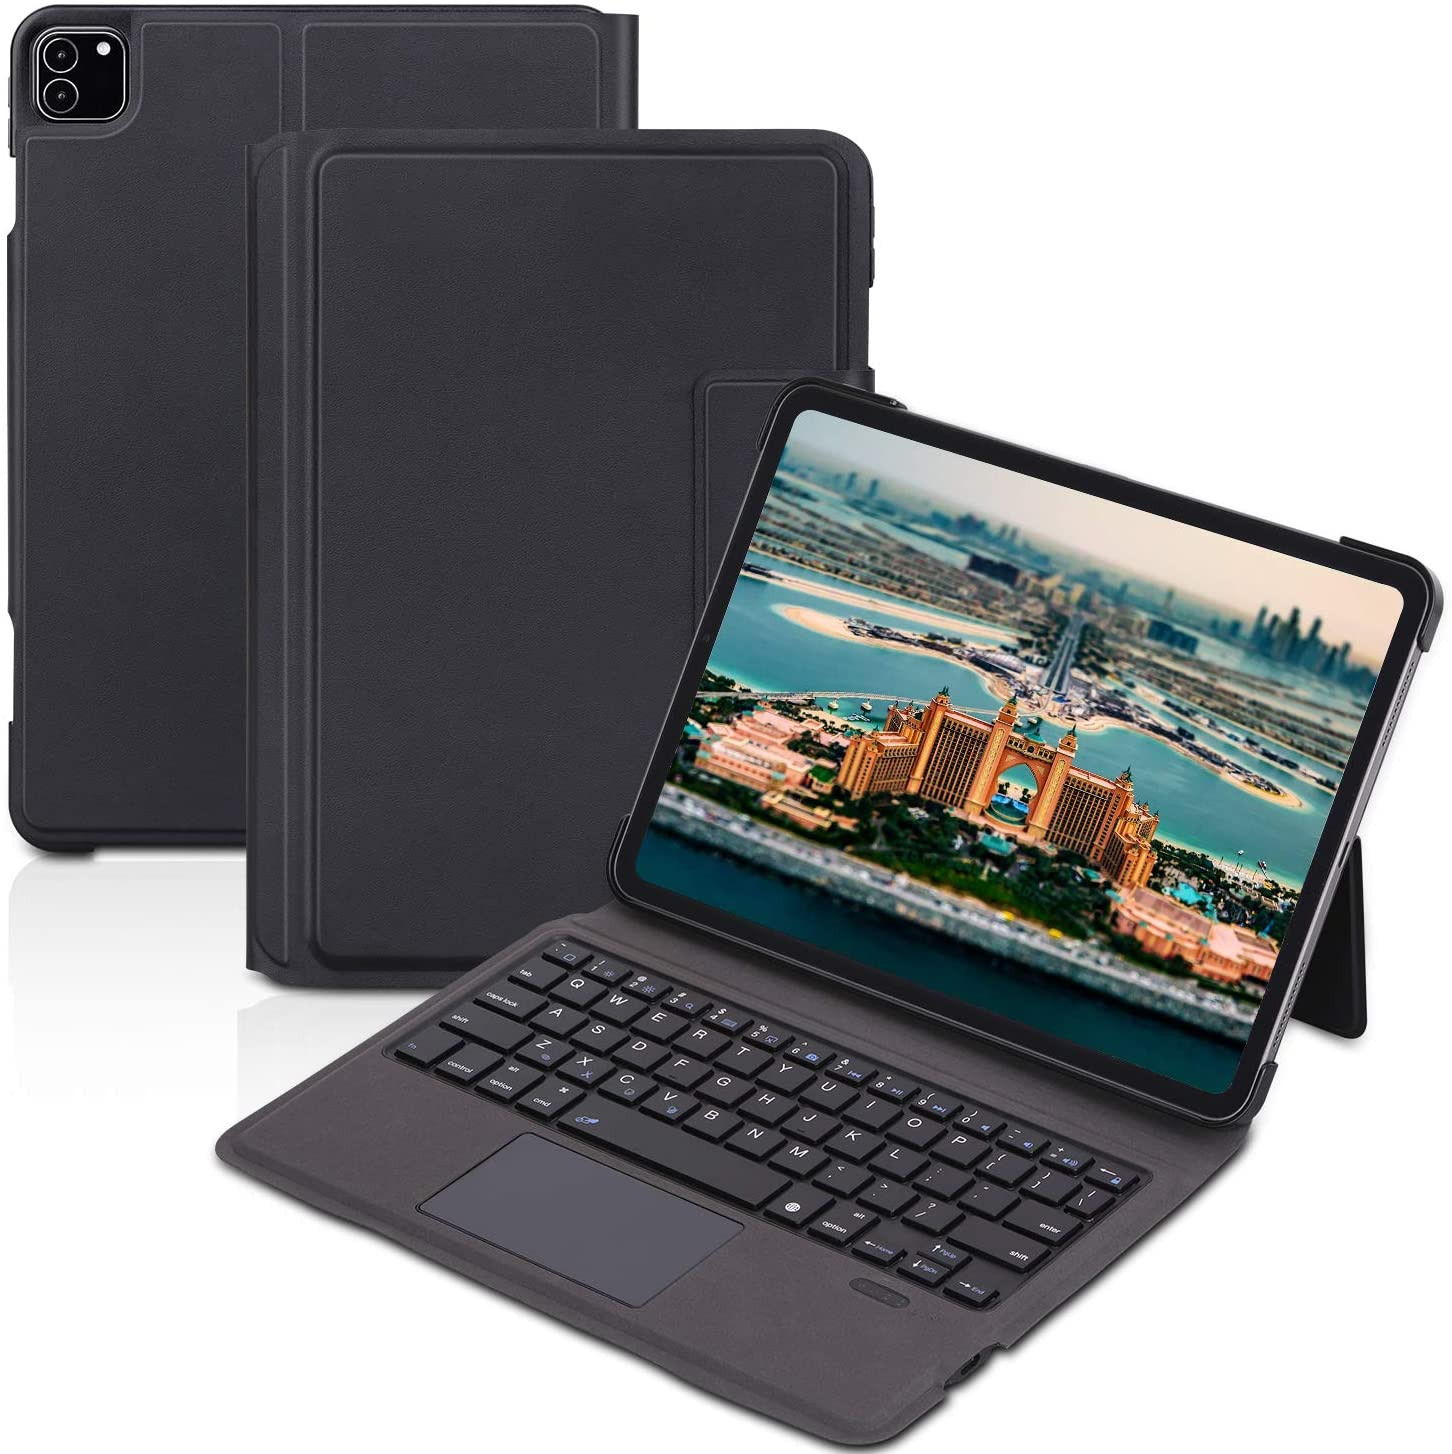 Ipad Keyboard Case 11 inch pro 2020 2nd Generation/2018 1st Gen- Touchpad Keyboard Bluetooth Slim Leather Folio Smart Cover for iPad 11